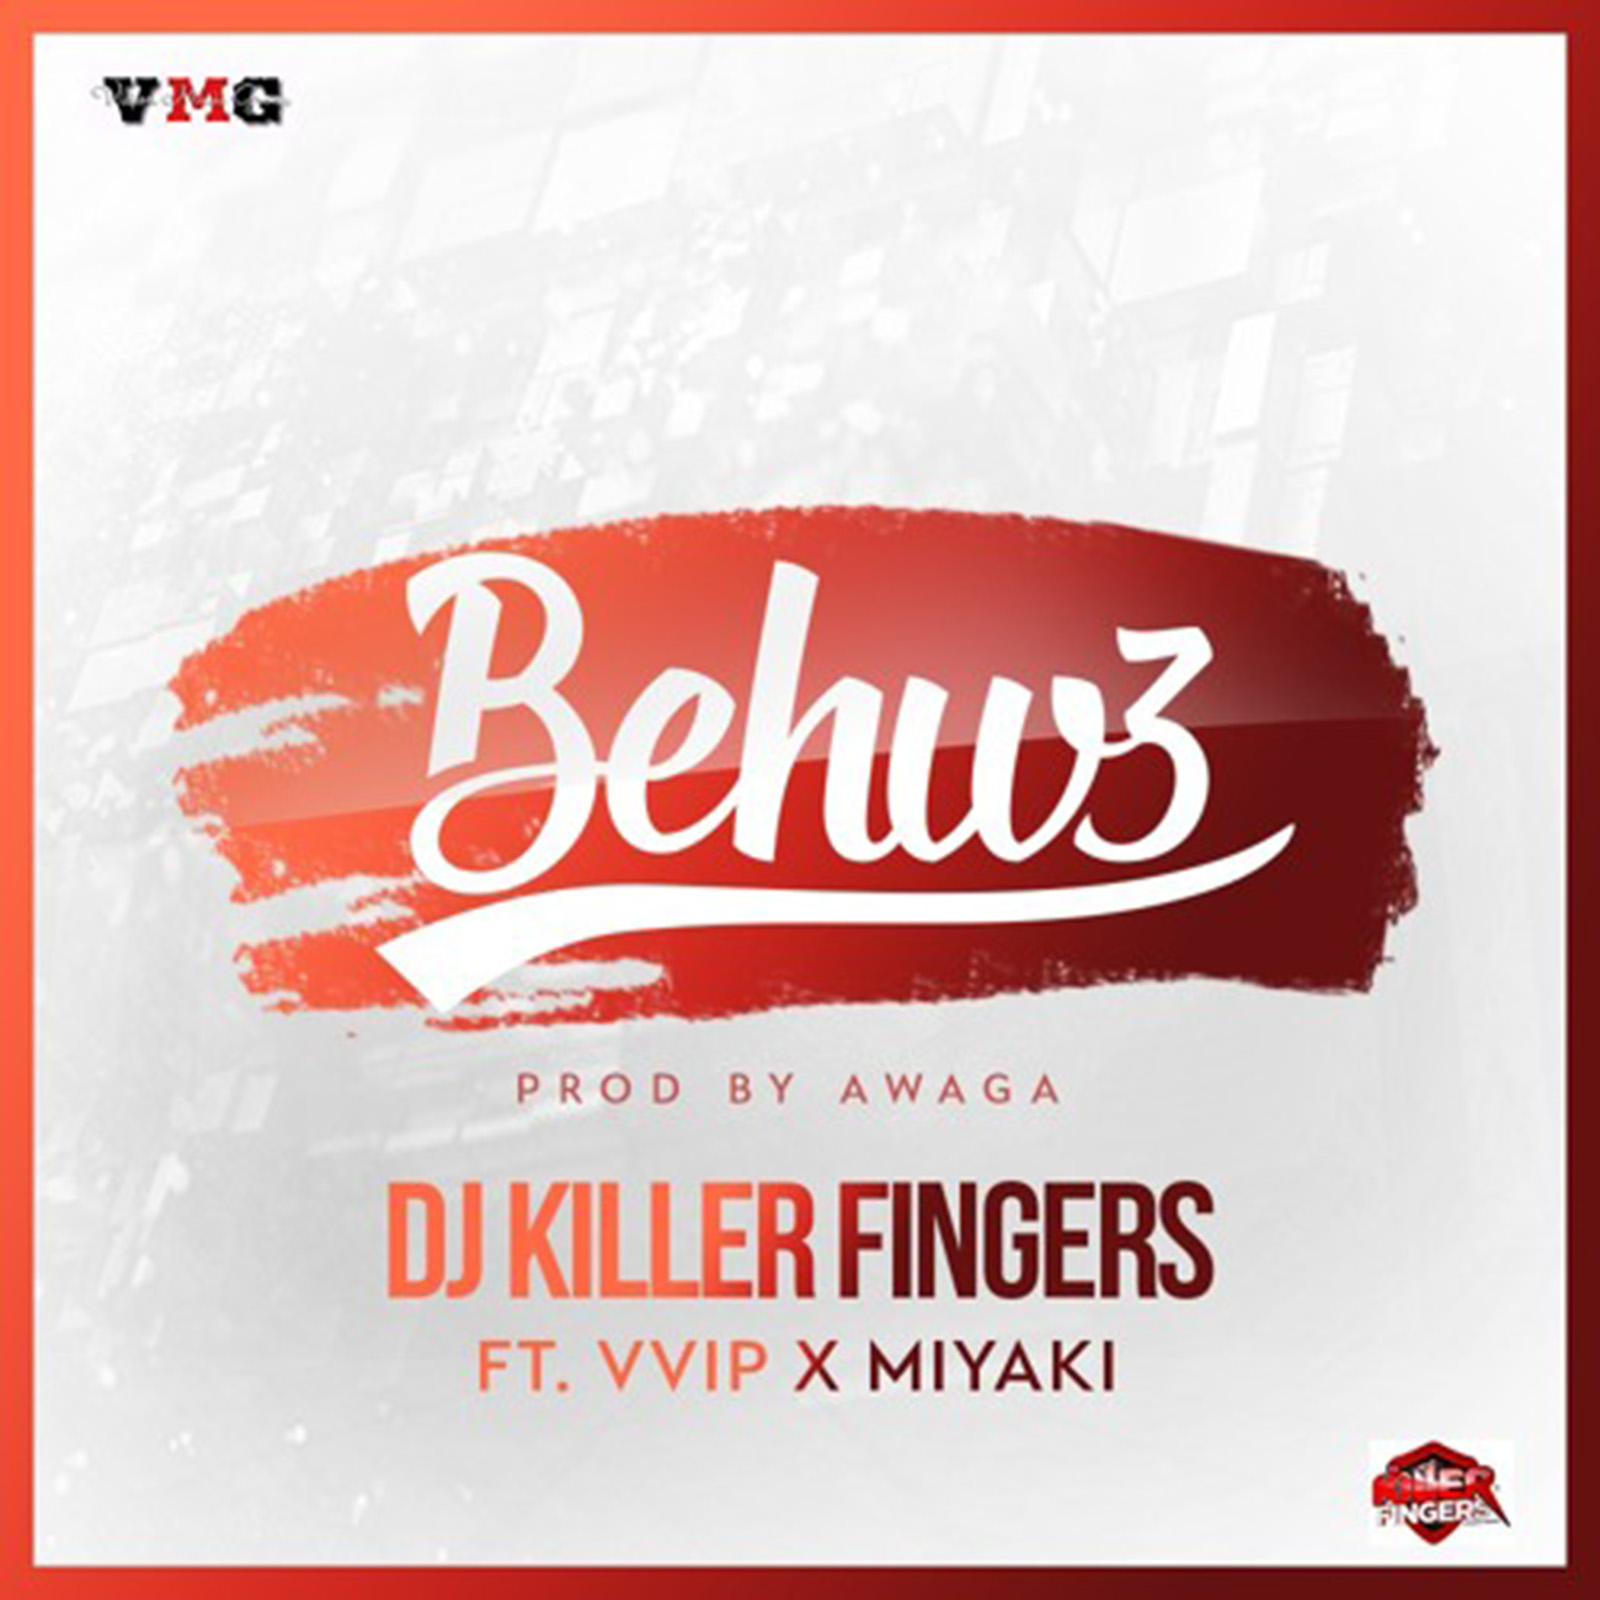 Behw3 by DJ Killer Fingers feat. VVIP & MiYaKi